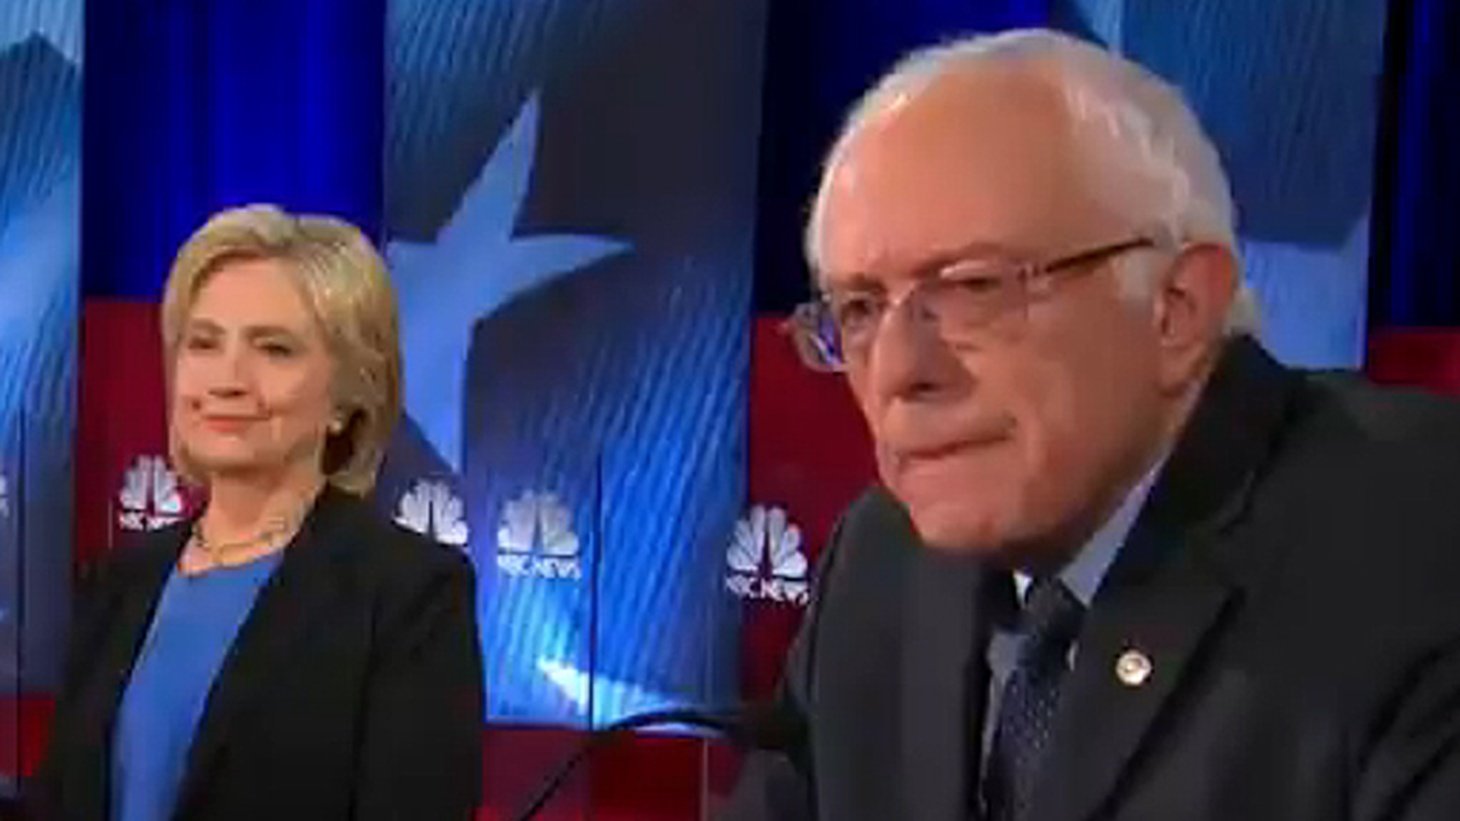 Once again, Hillary Clinton is facing an unexpected challenge in the Iowa caucuses… with less than two weeks to go. We hear how last night's debate with Bernie Sanders might effect the outcome -- in Iowa and other states as a long primary process finally gets under way.